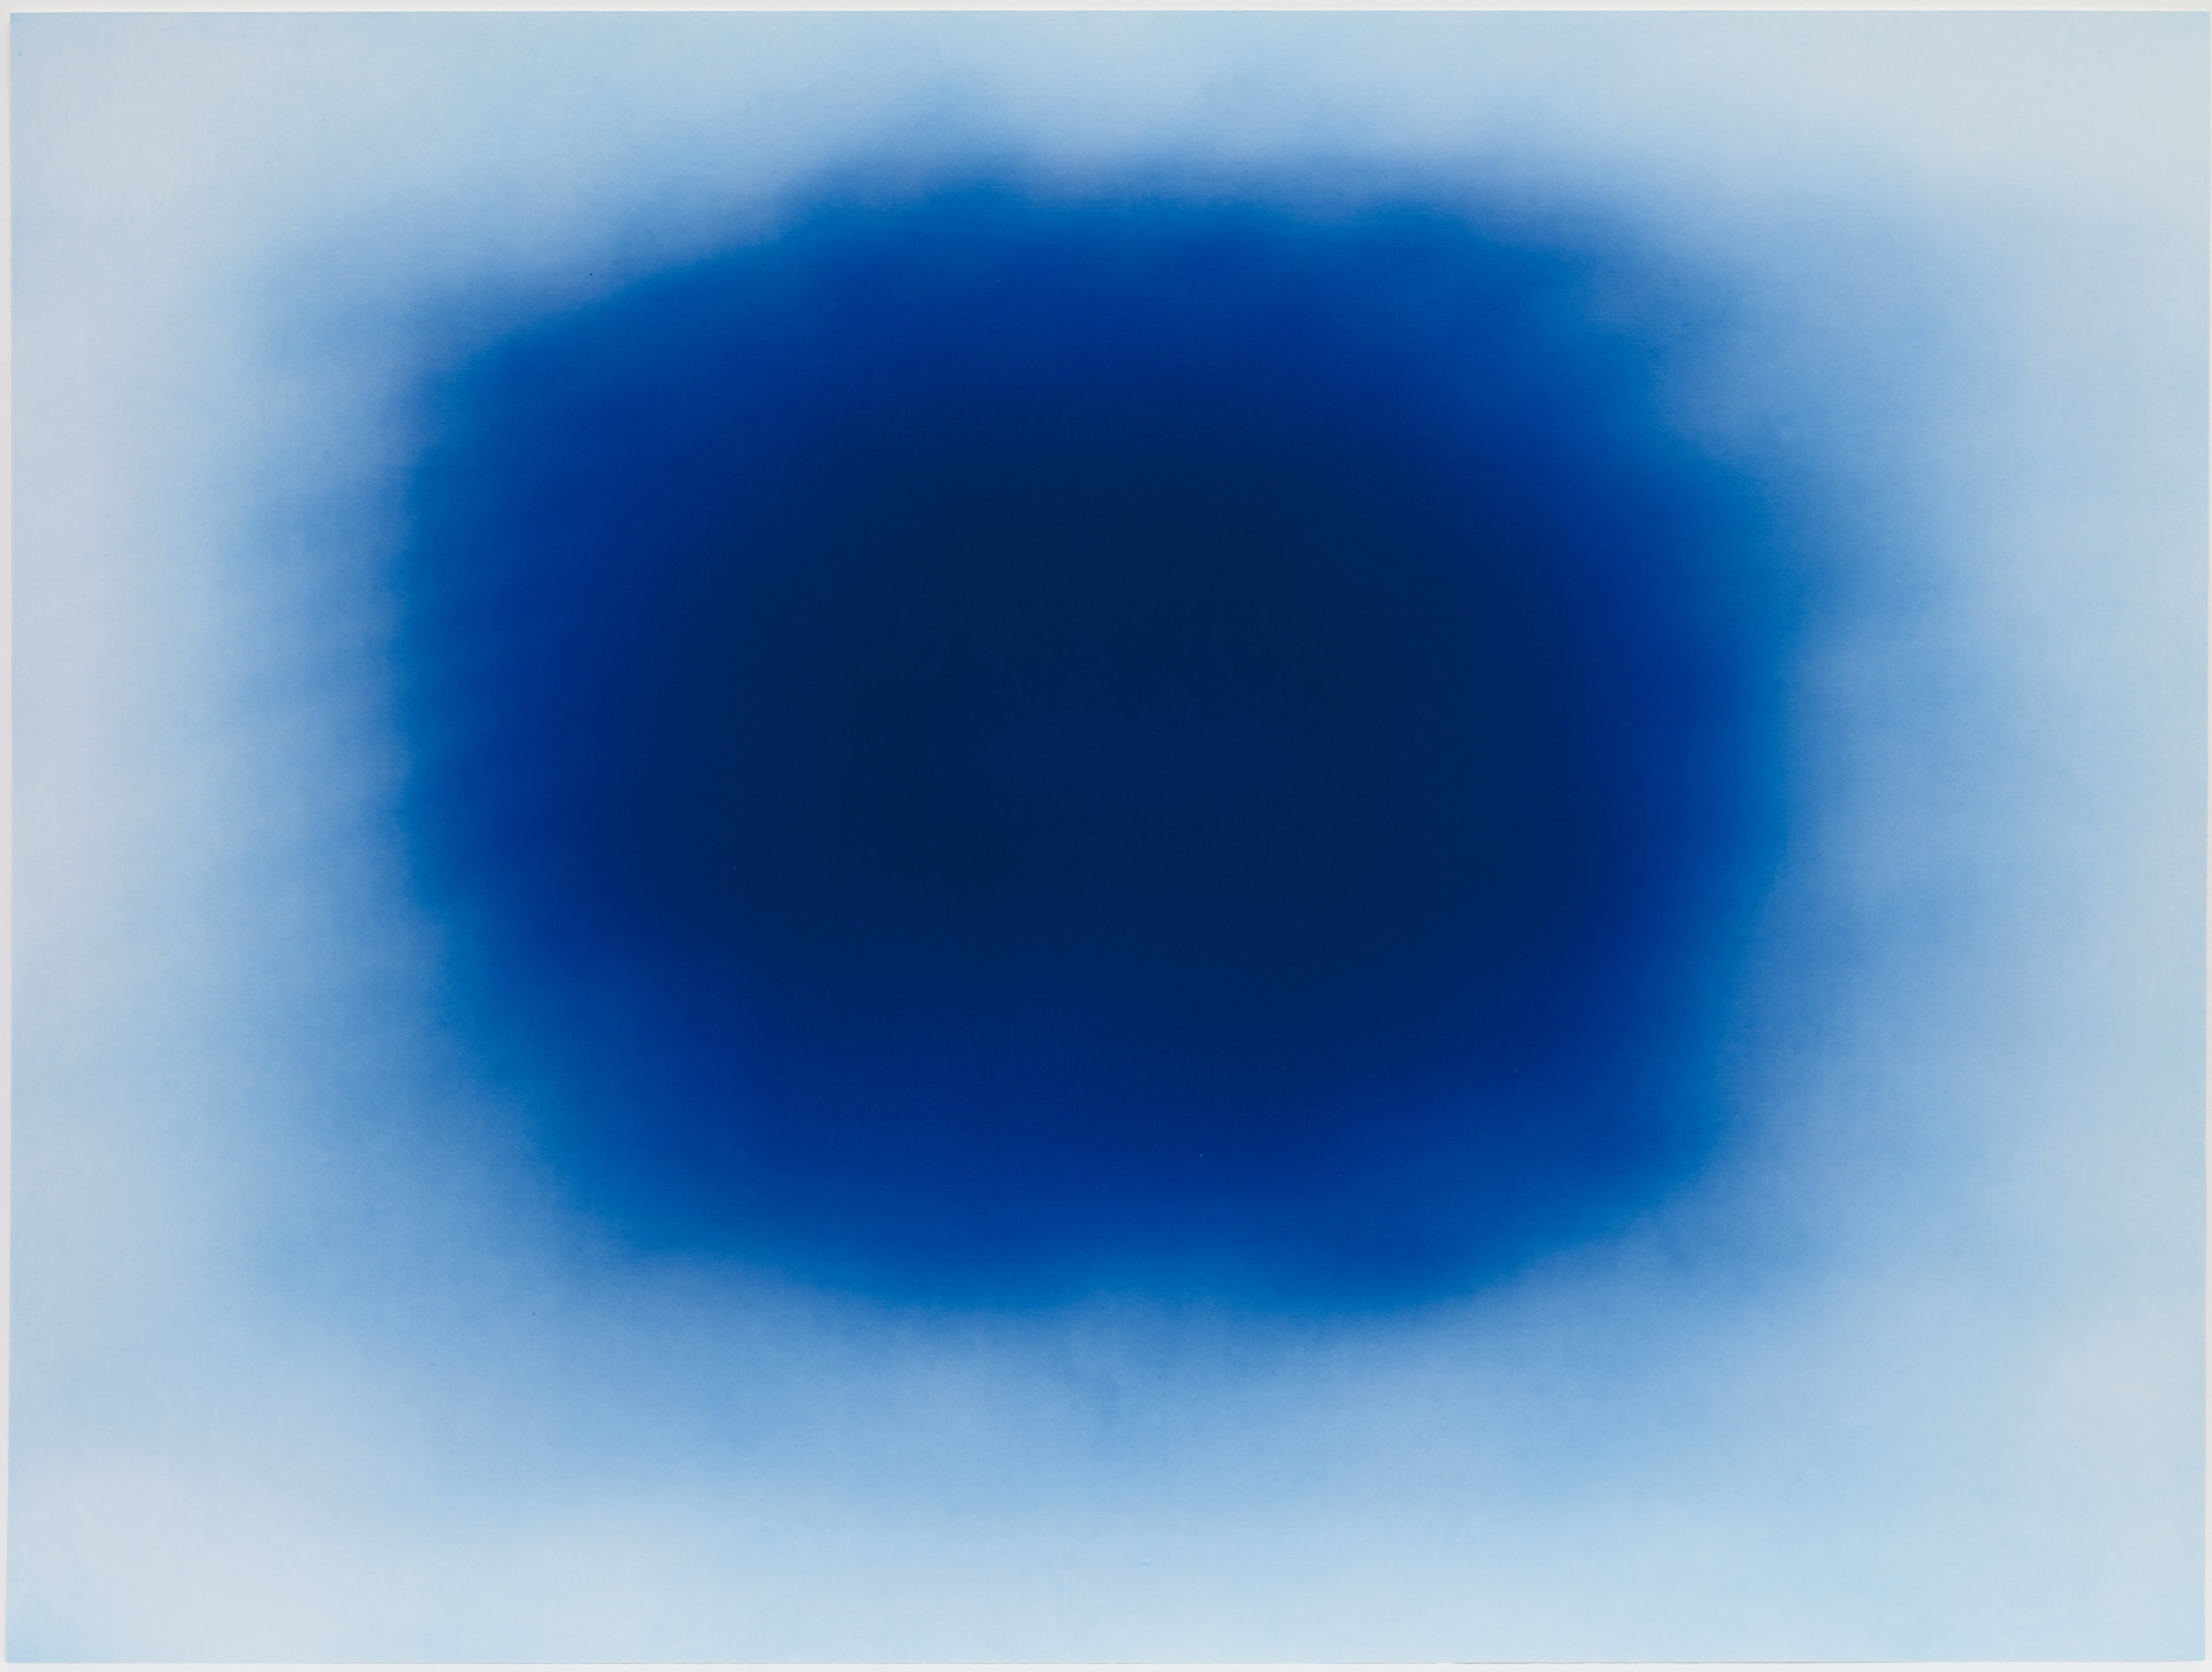 Anish Kapoor installs series of 10 prints 'Breathing Blue' at Snowsfields Adolescent Unit for young people in severe mental health crisis -